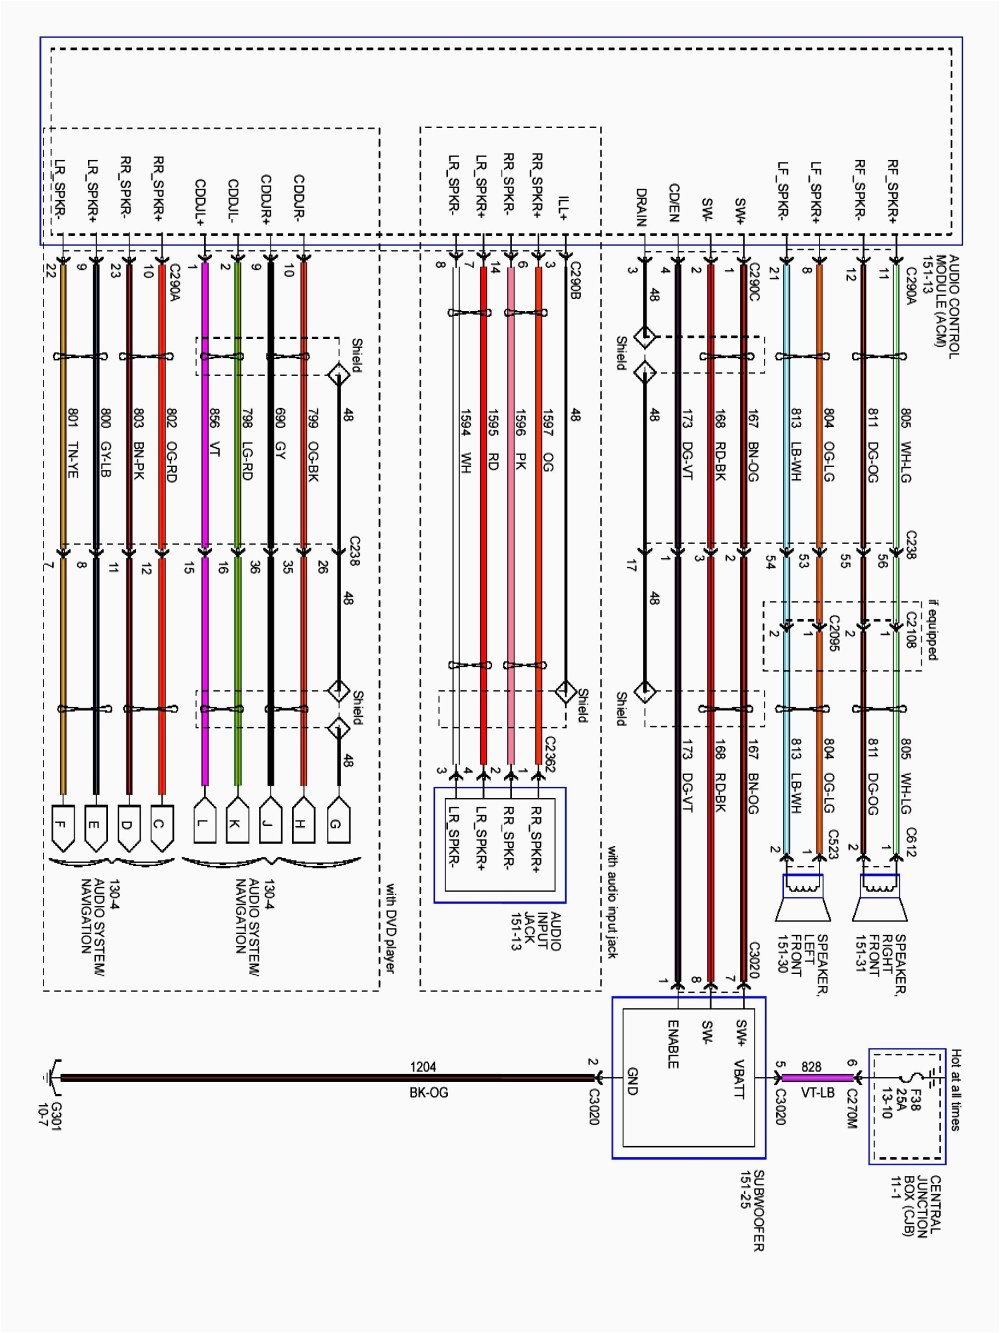 medium resolution of 2008 ford f 150 wiring diagram wiring diagram used 2008 ford f550 wiring diagram dlc wiring